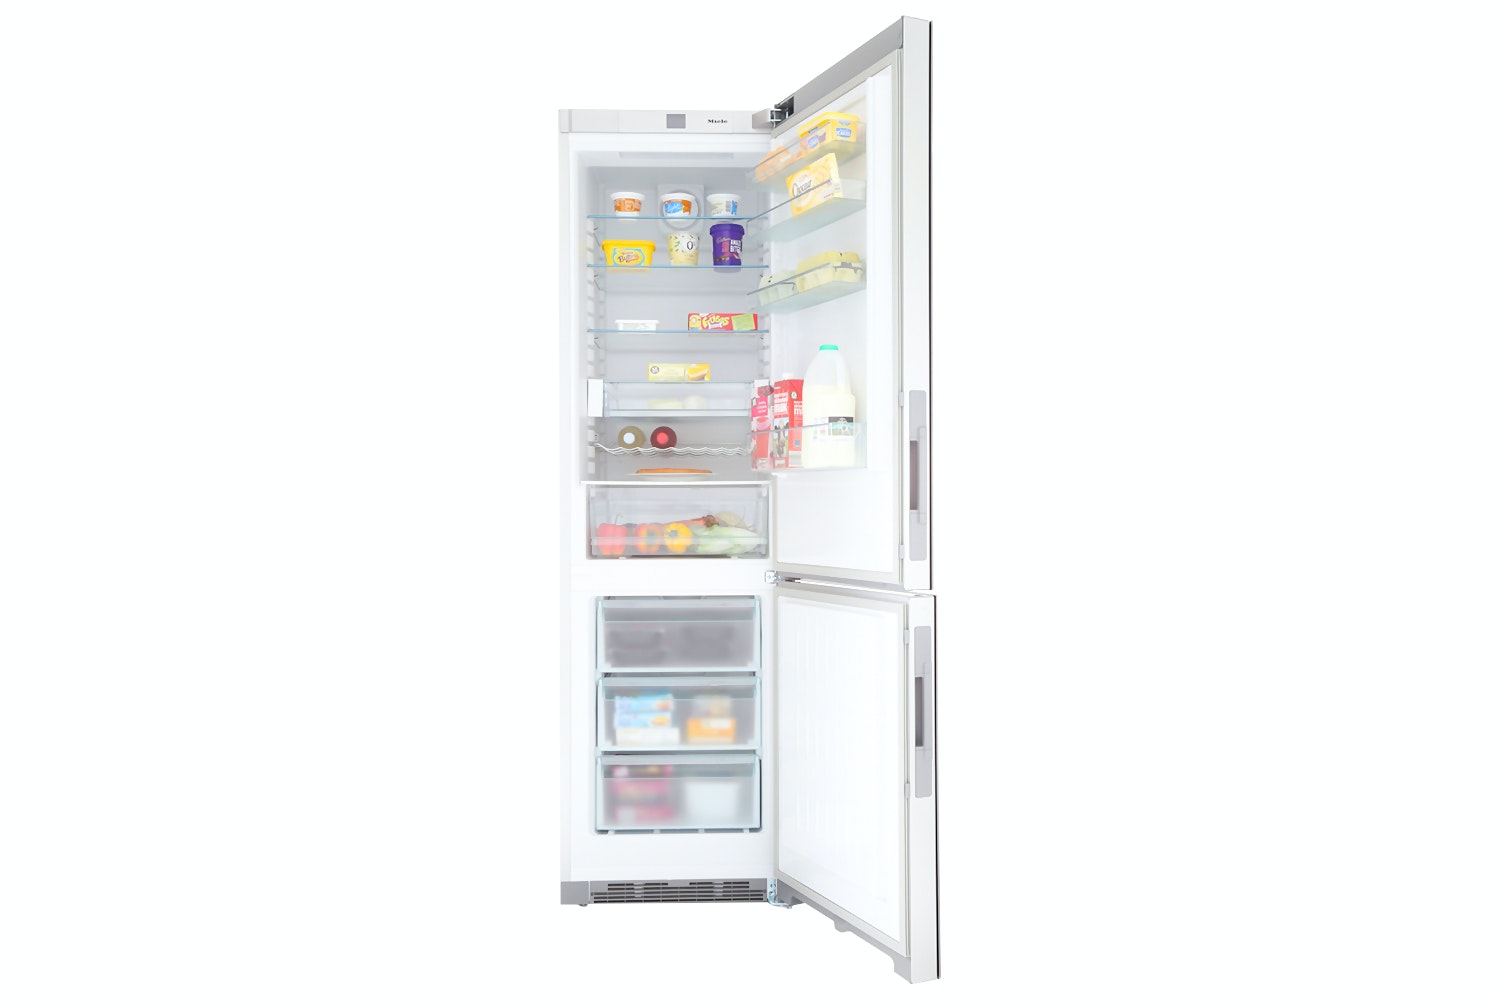 KFN 29233 D bb  XL freestanding fridge freezer   in exclusive Blackboard edition with DailyFresh and Frost free